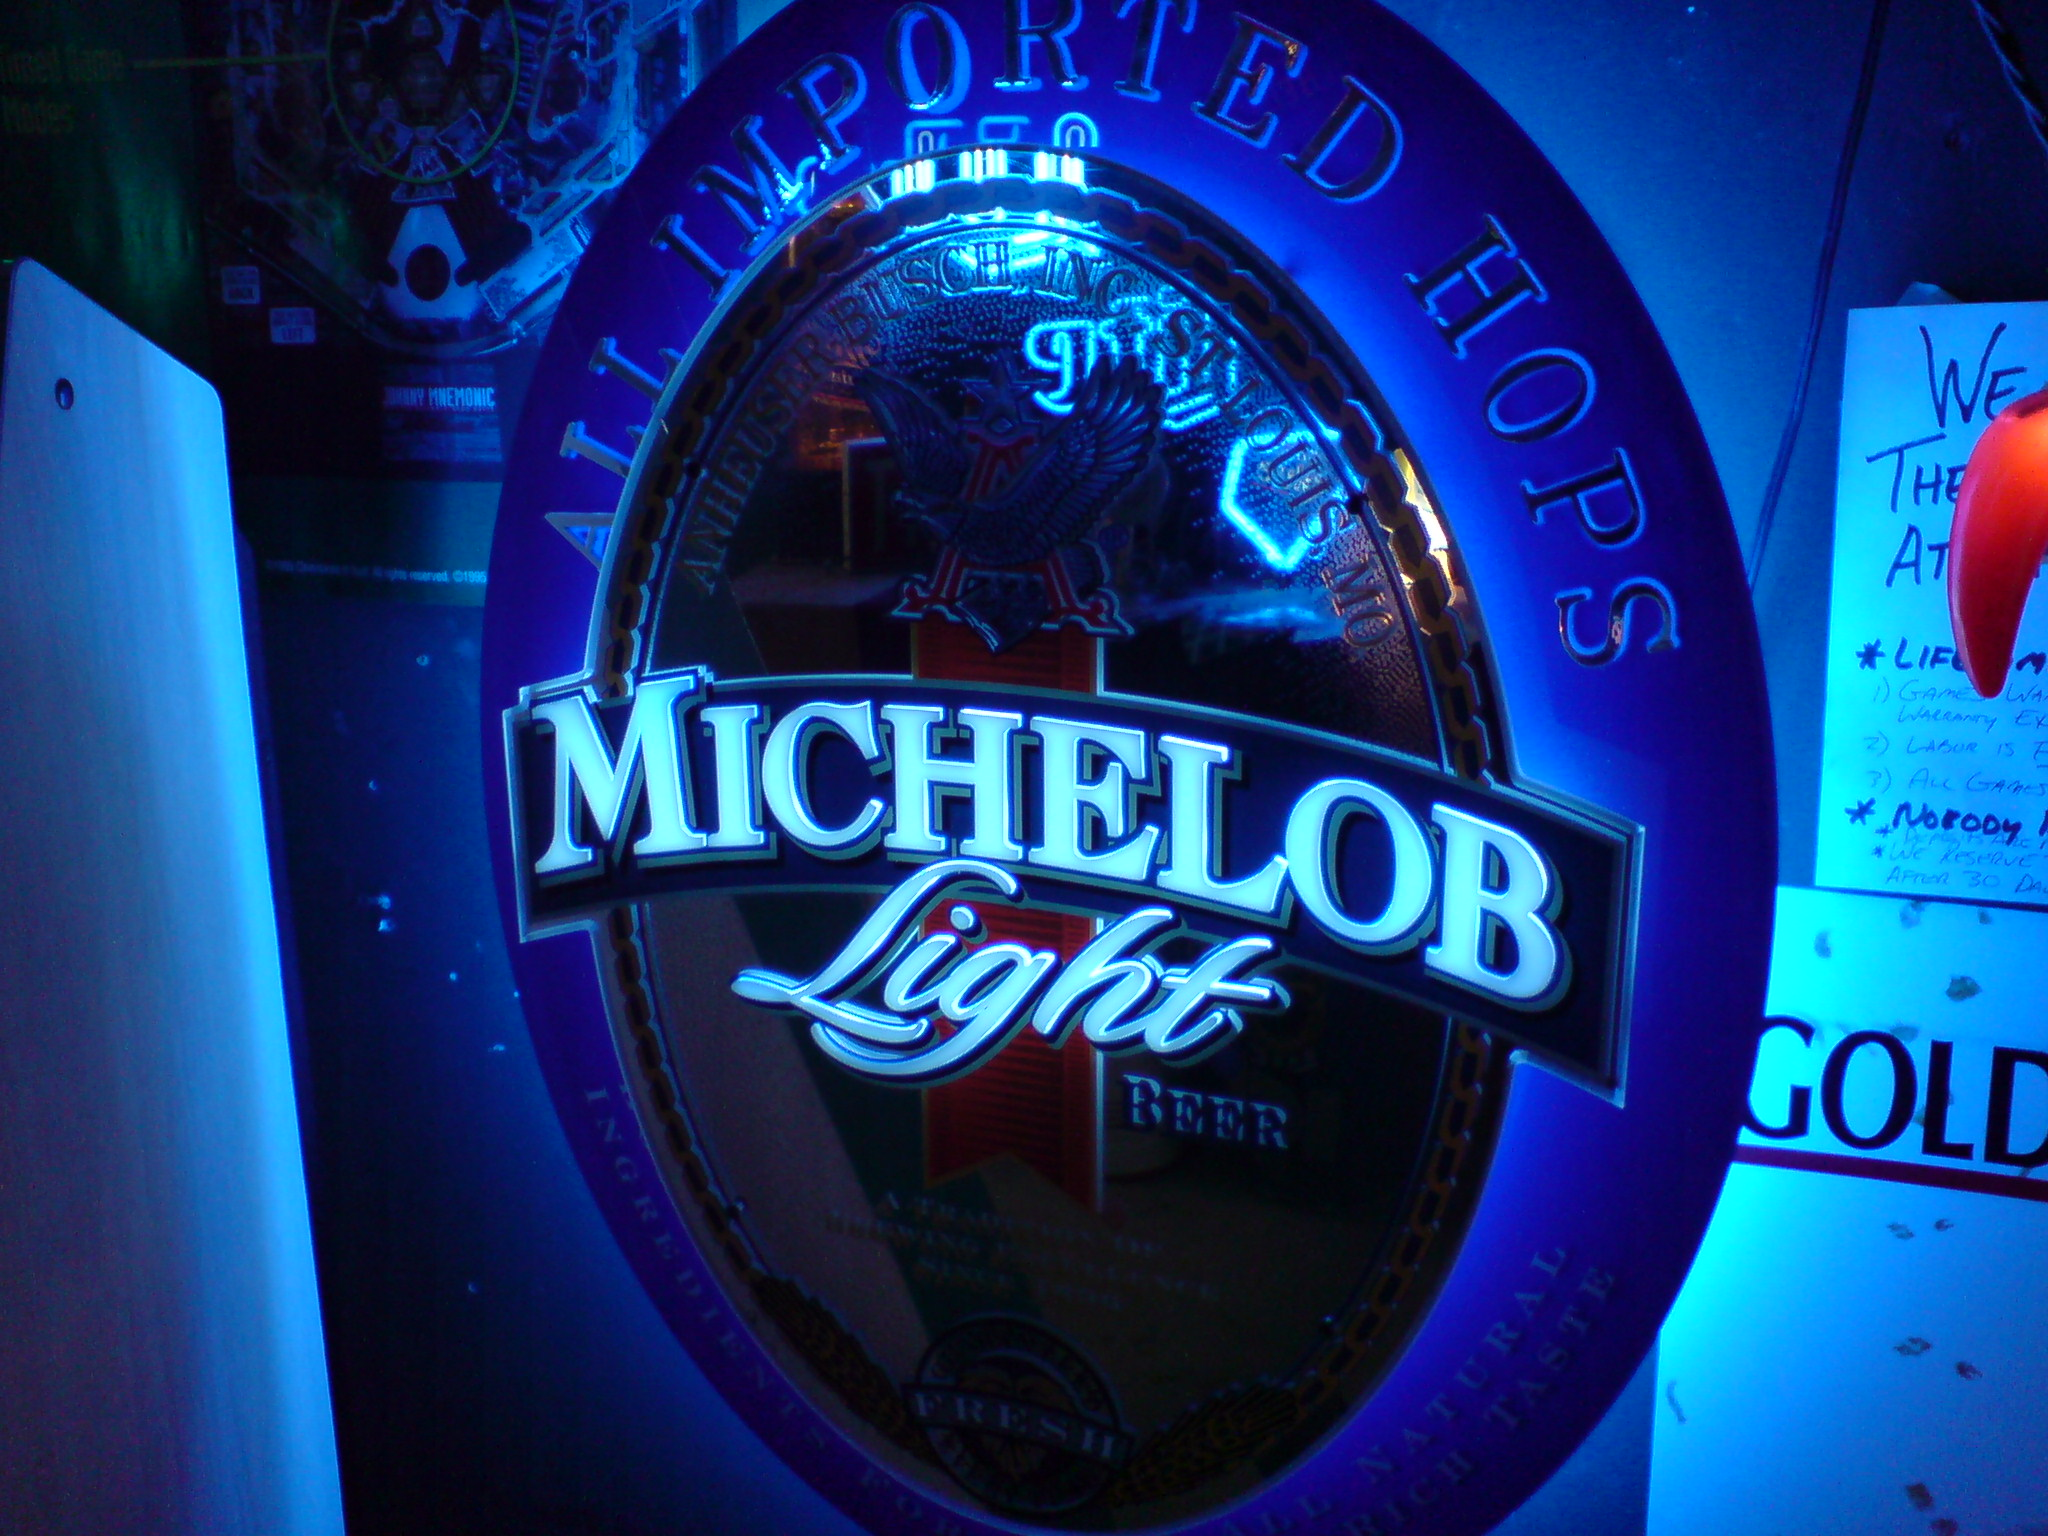 Michelob Light Neon